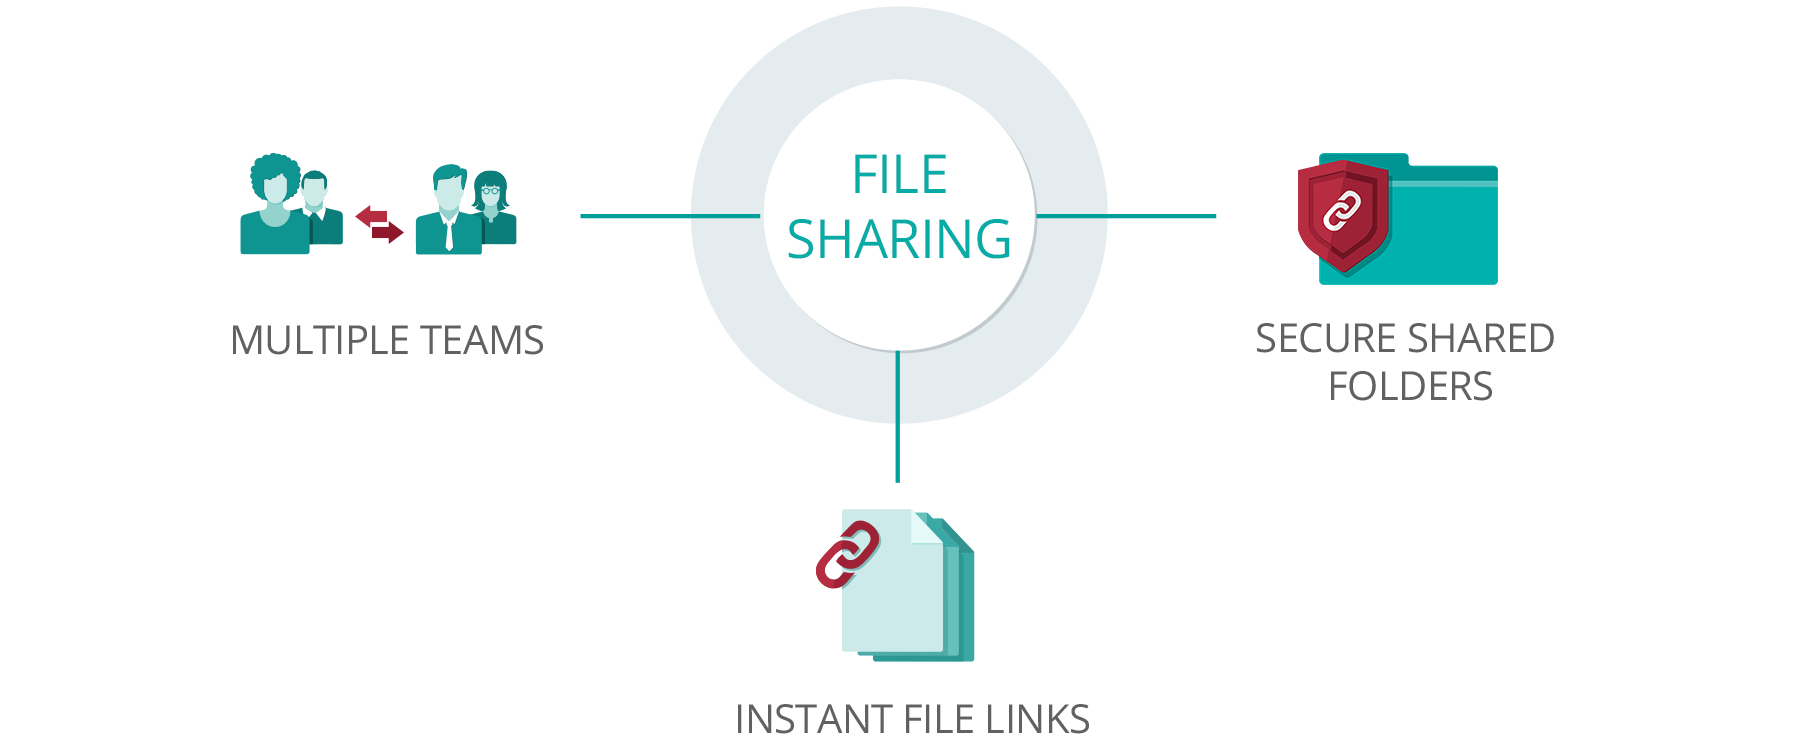 File Sharing and Collaboration Any Location